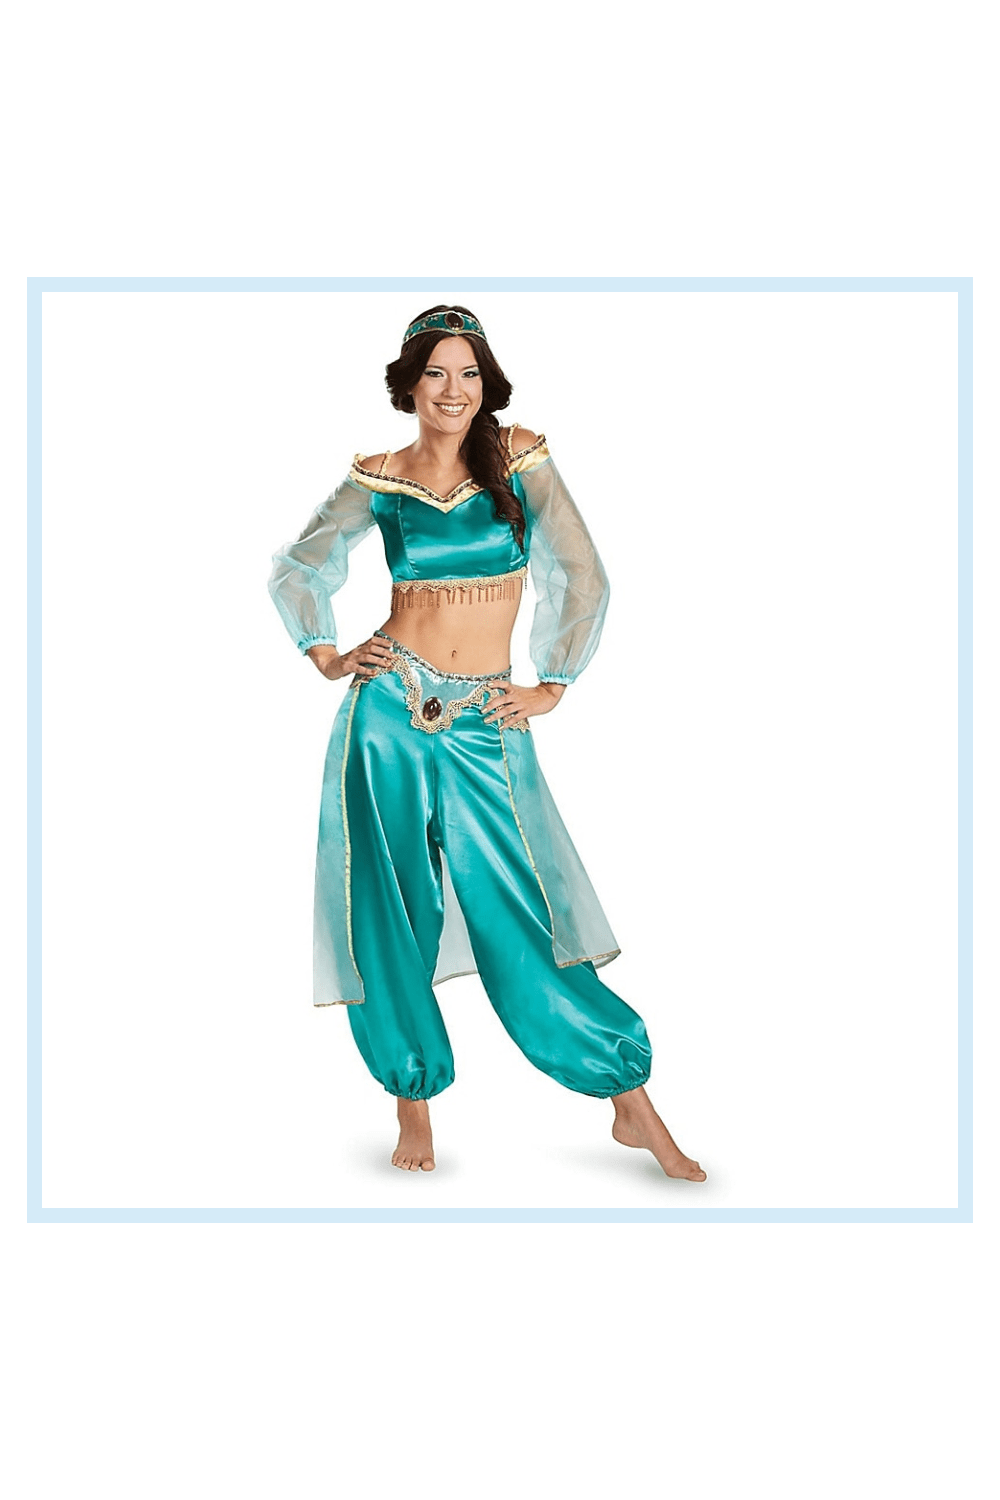 Disney Princess Jasmine Halloween Costume Bed Bath Beyond Princess Jasmine Halloween Costume Jasmine Halloween Costume Disney Princess Jasmine